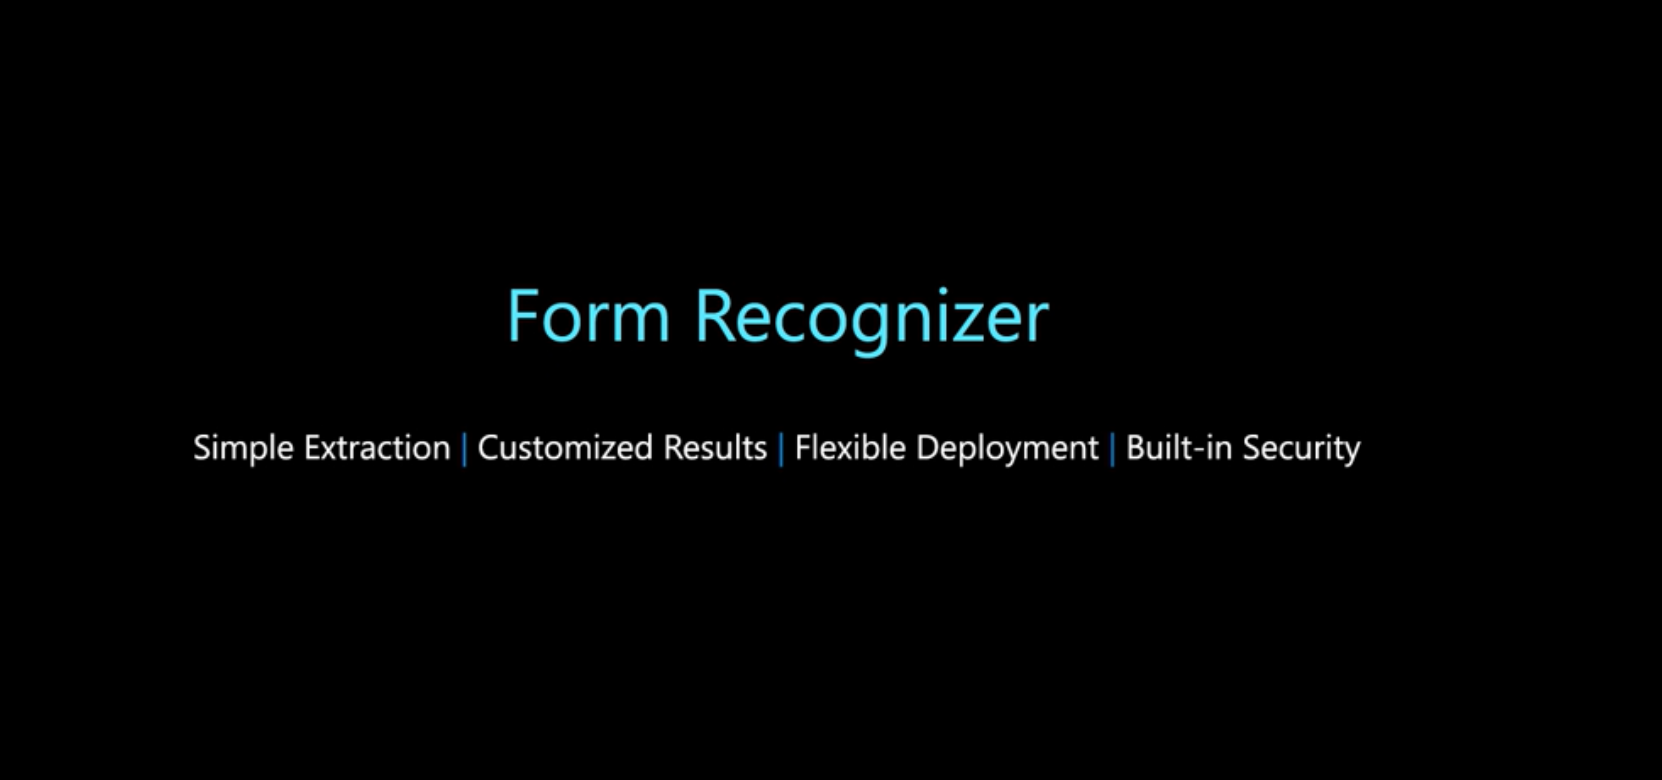 Introduction to Form Recognizer